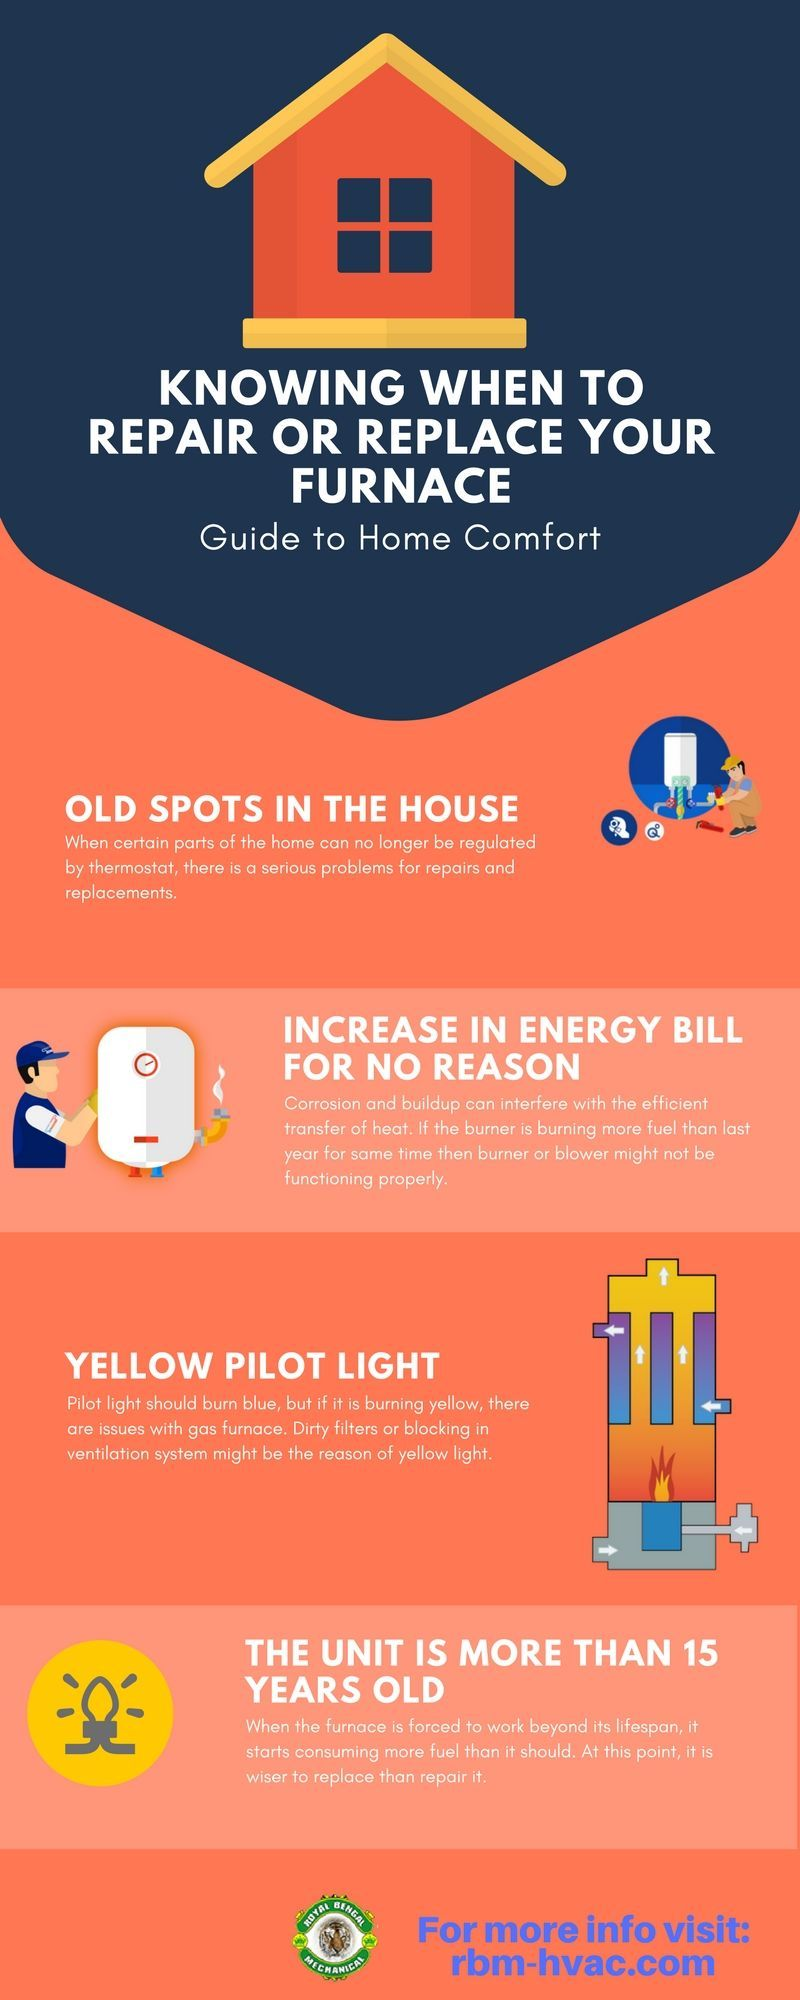 Knowing When To Repair Or Replace Your Furnace Infographic